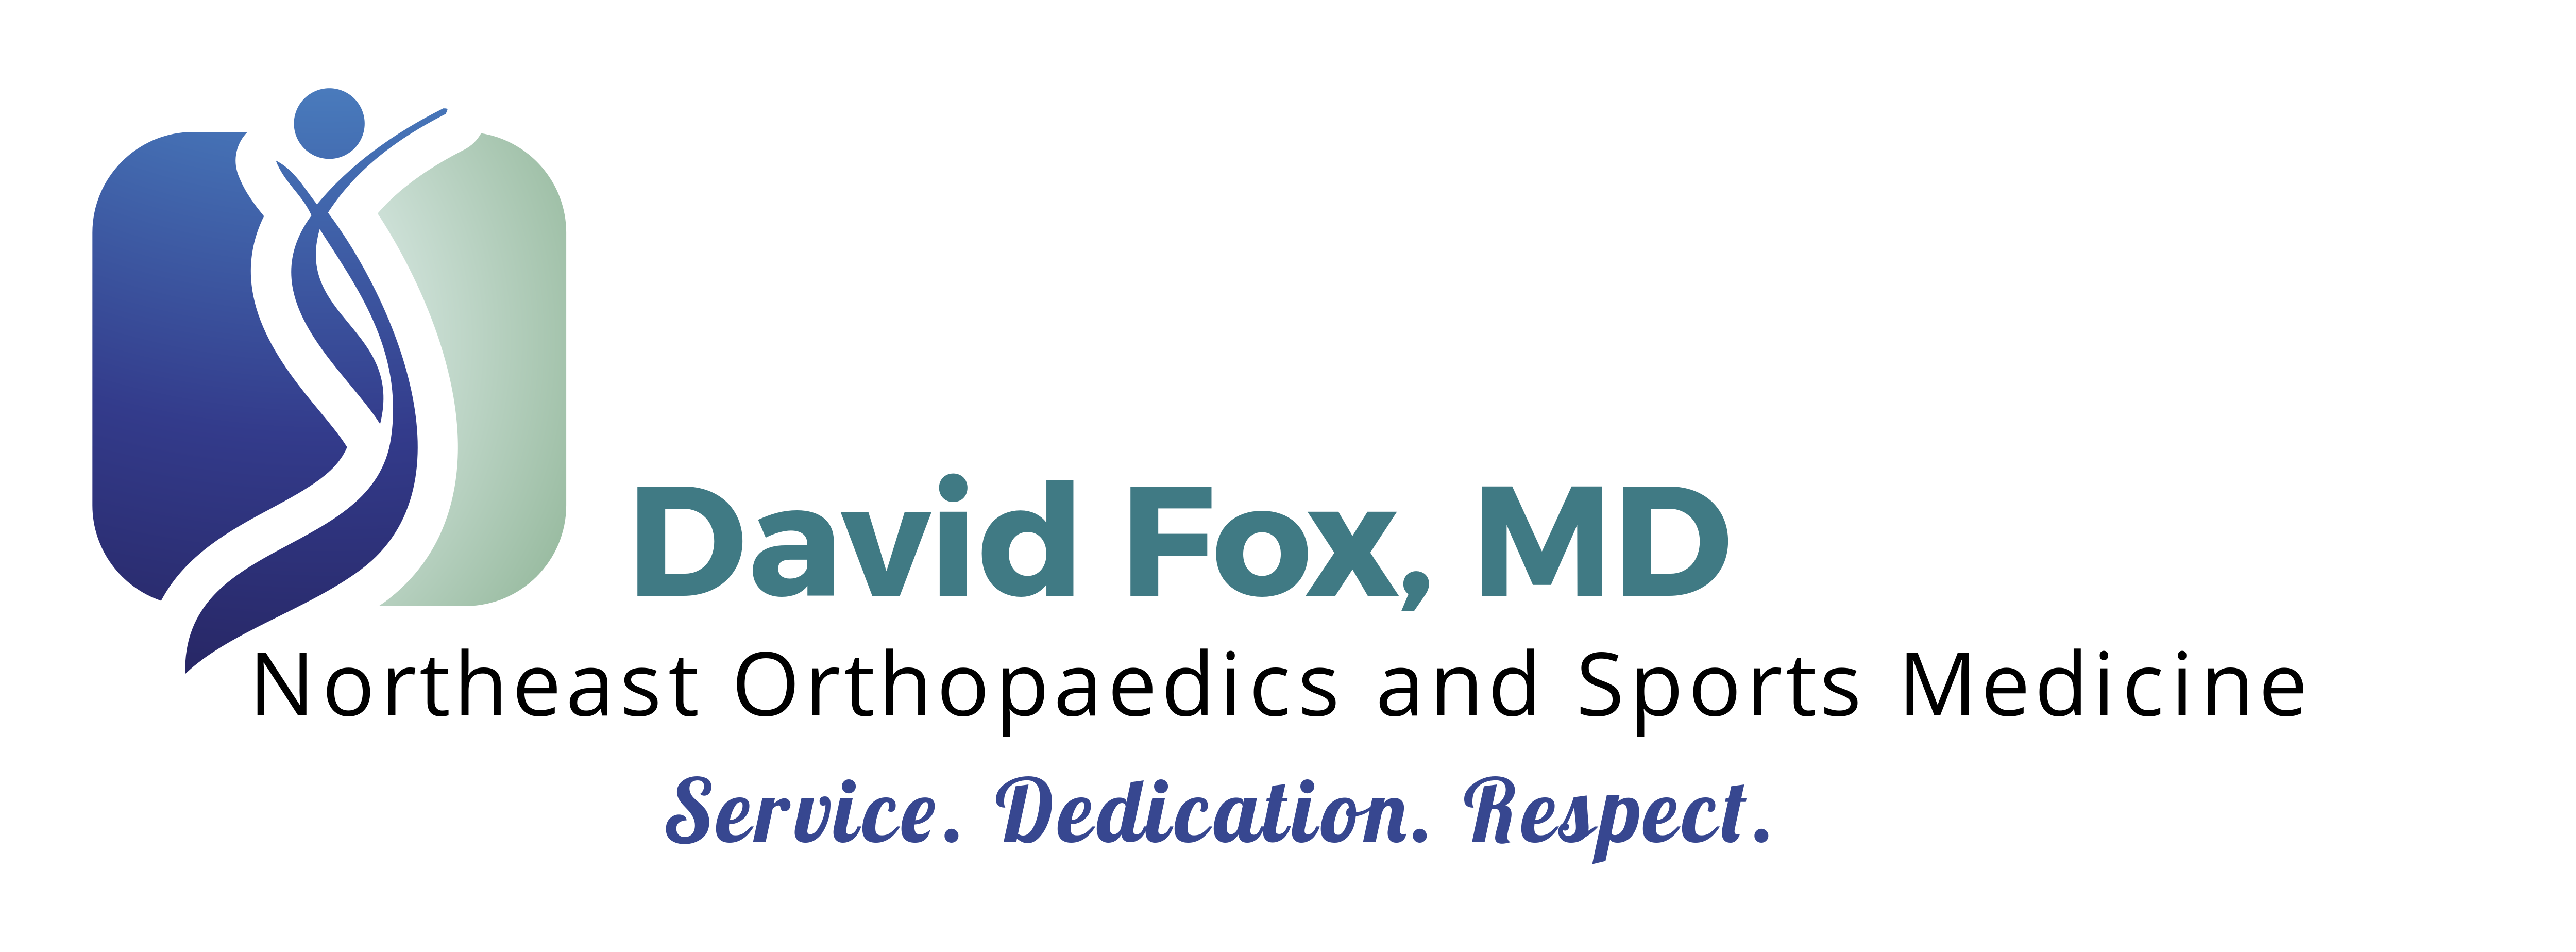 Dr Fox Orthopedic Surgeon hip and knee replacement